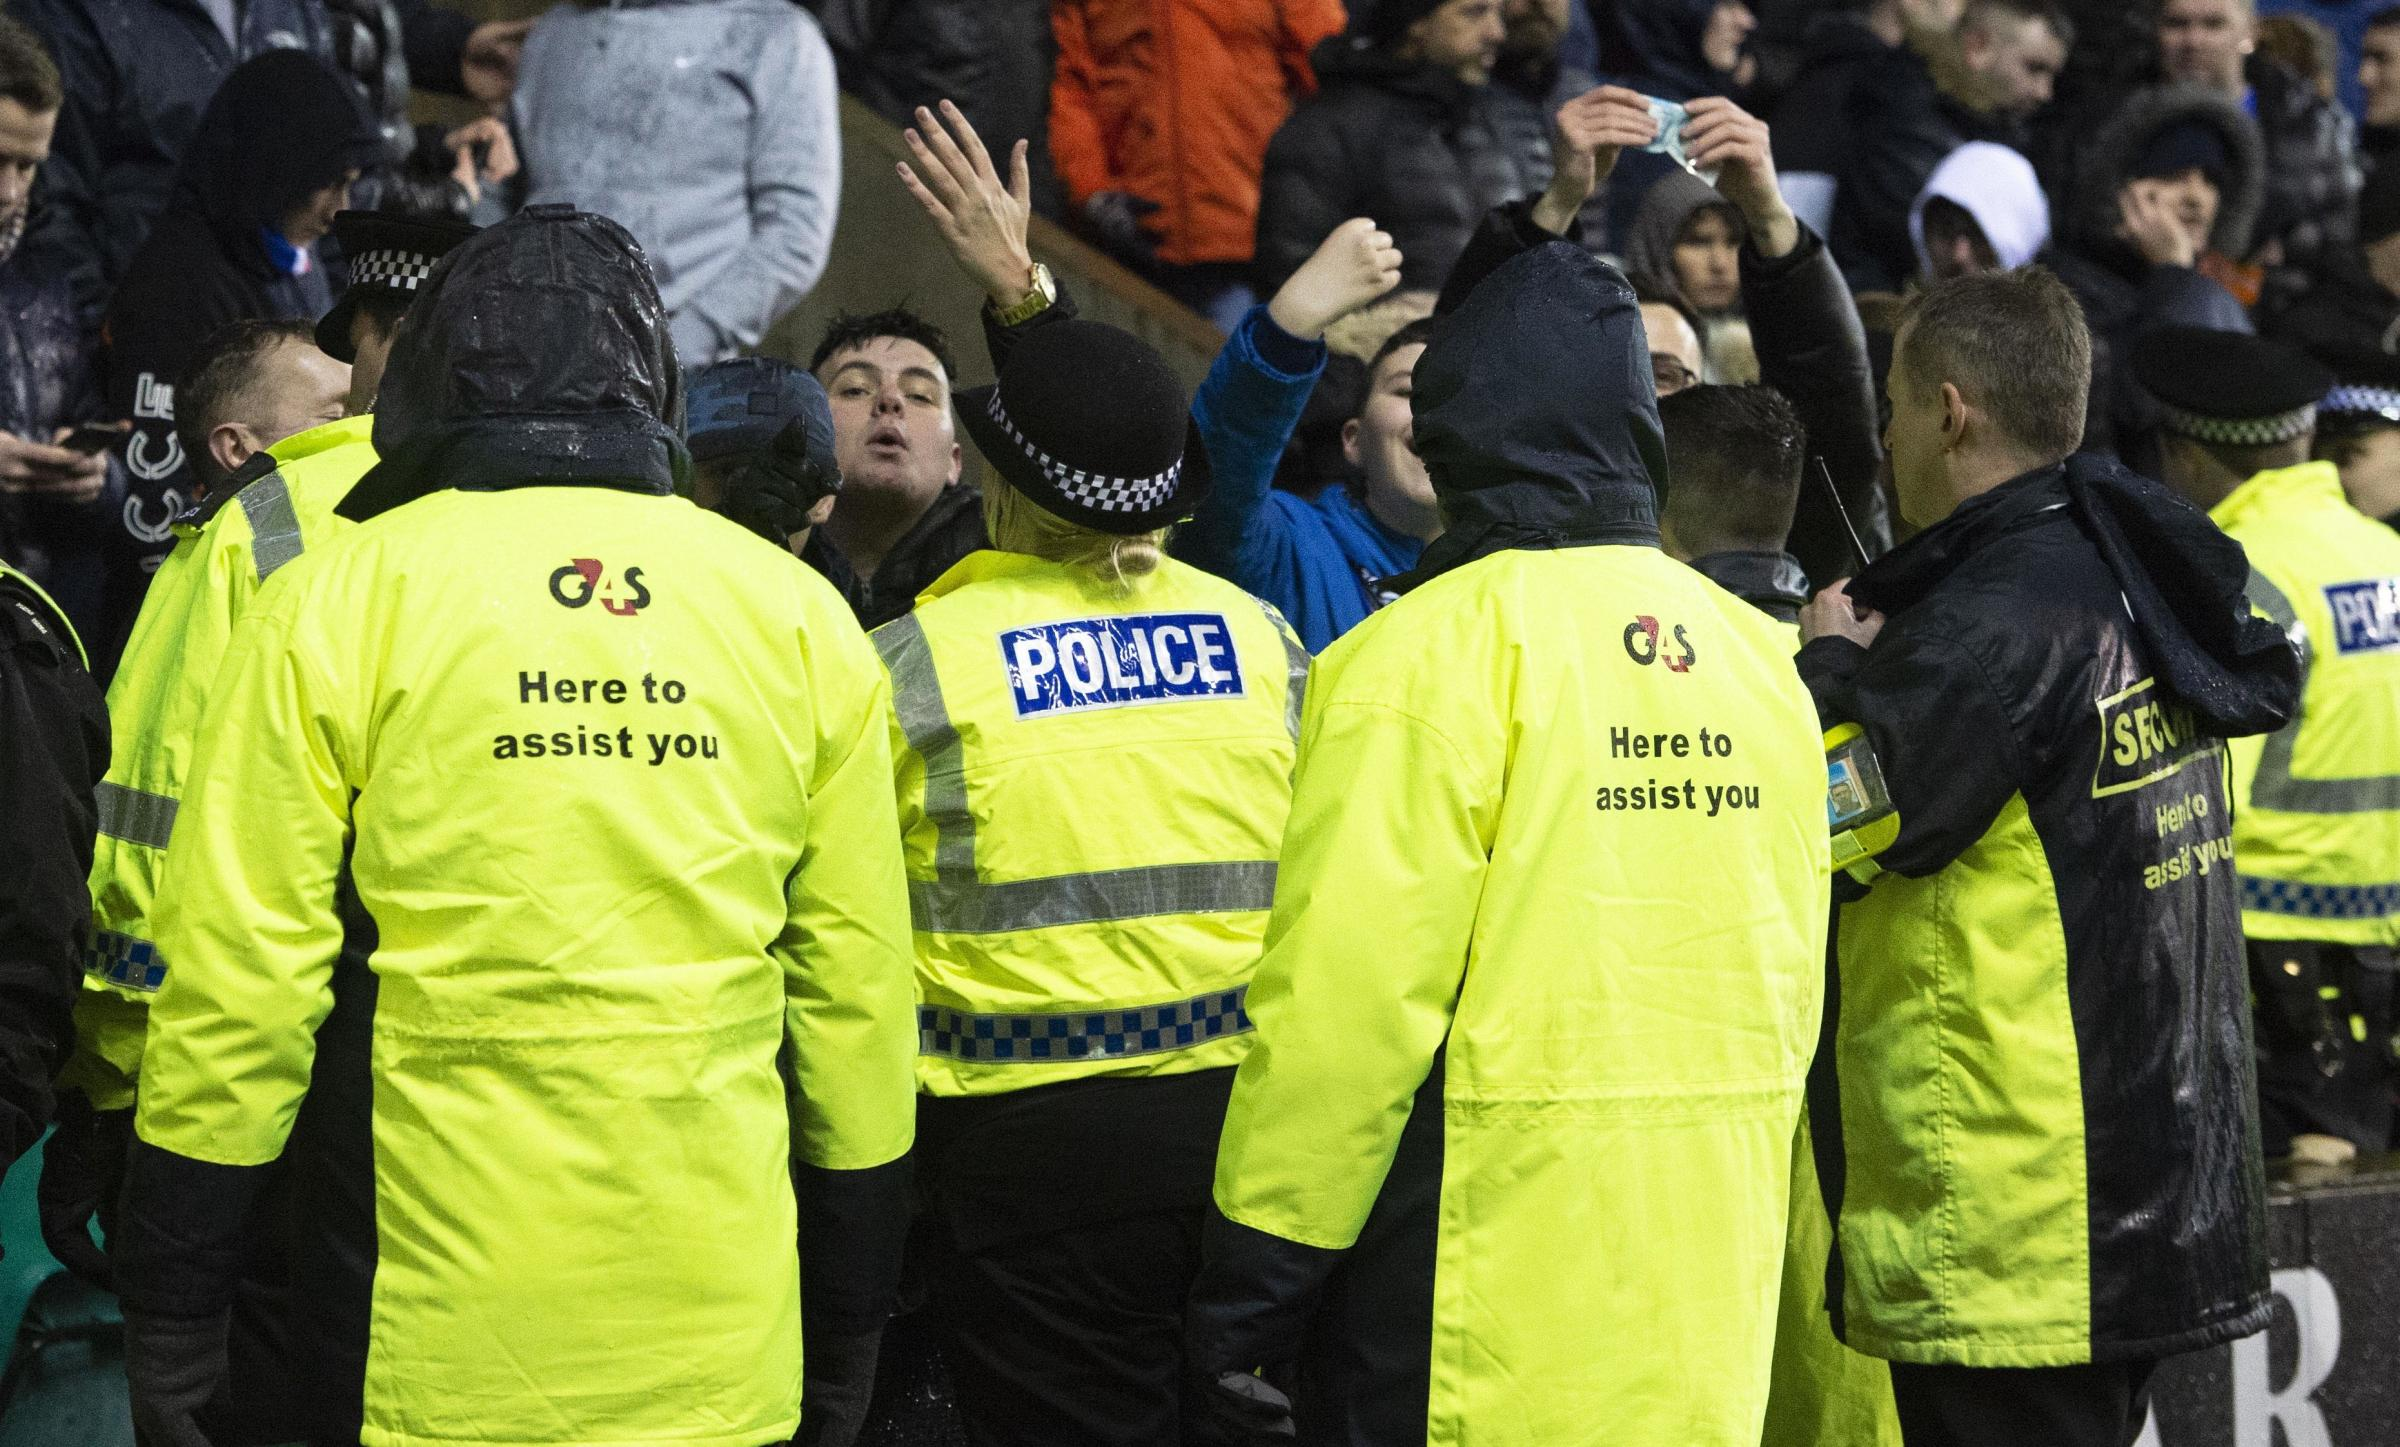 Rangers fans are held back by police after James Tavernier is confronted by a Hibs fan on the pitch at Easter Road on Friday night.